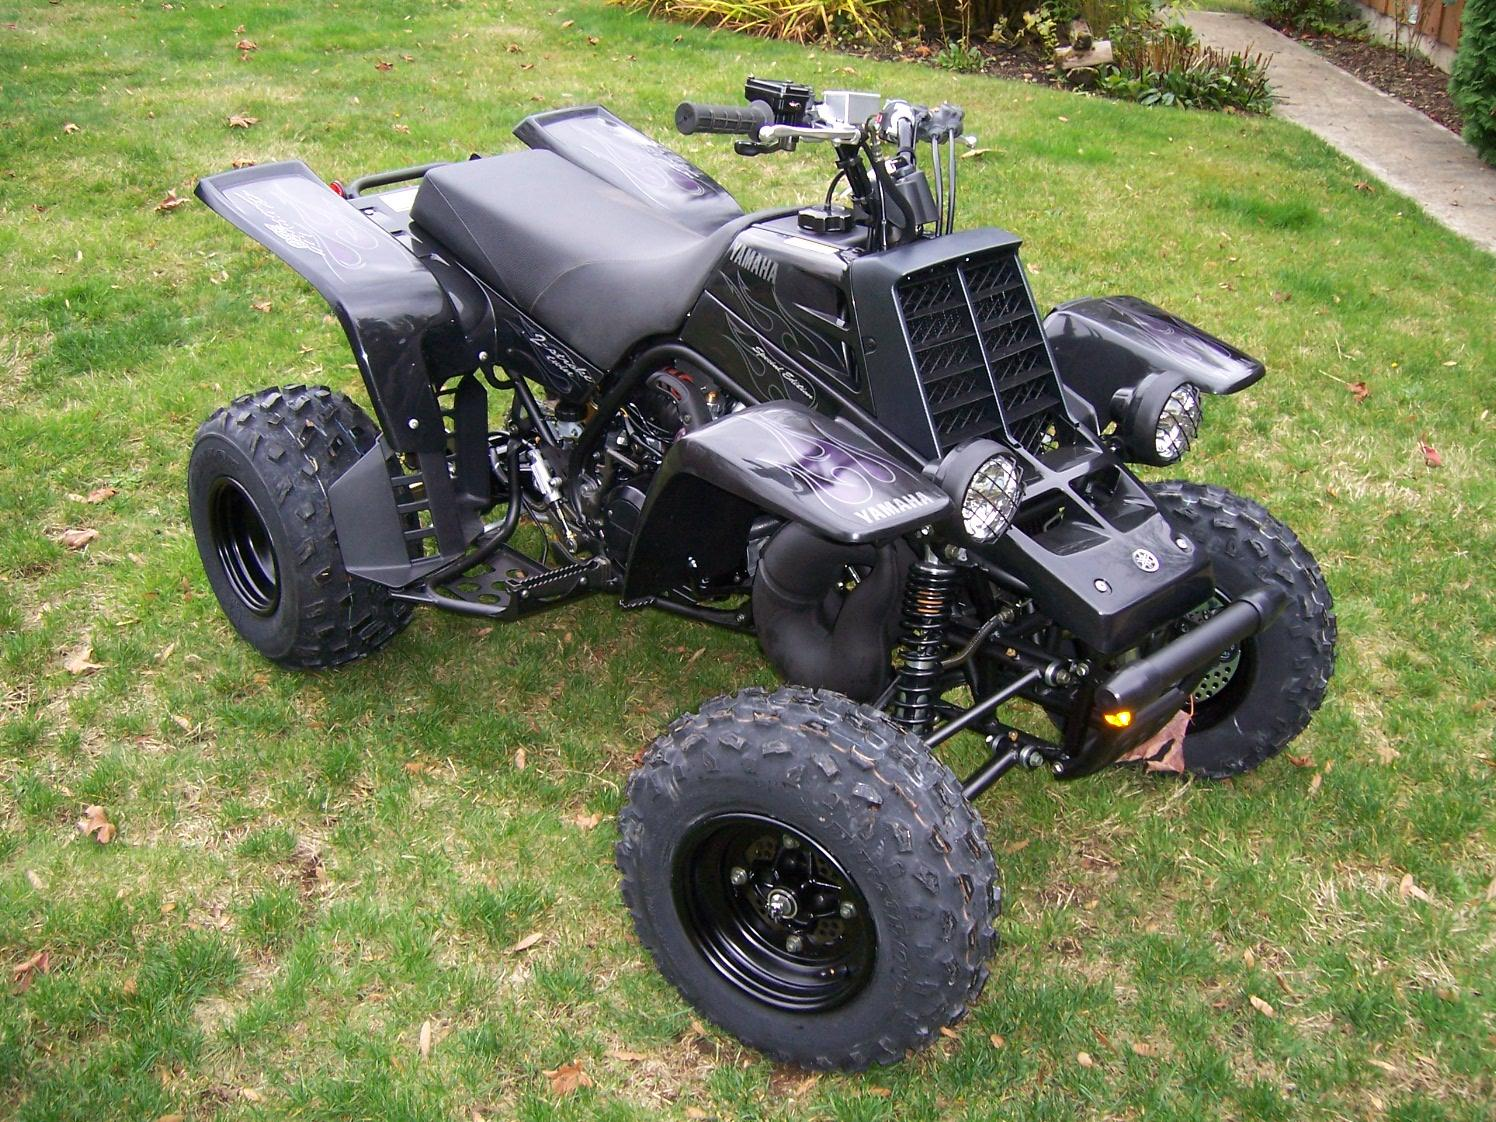 Yamaha YFZ Banshee photo 30636